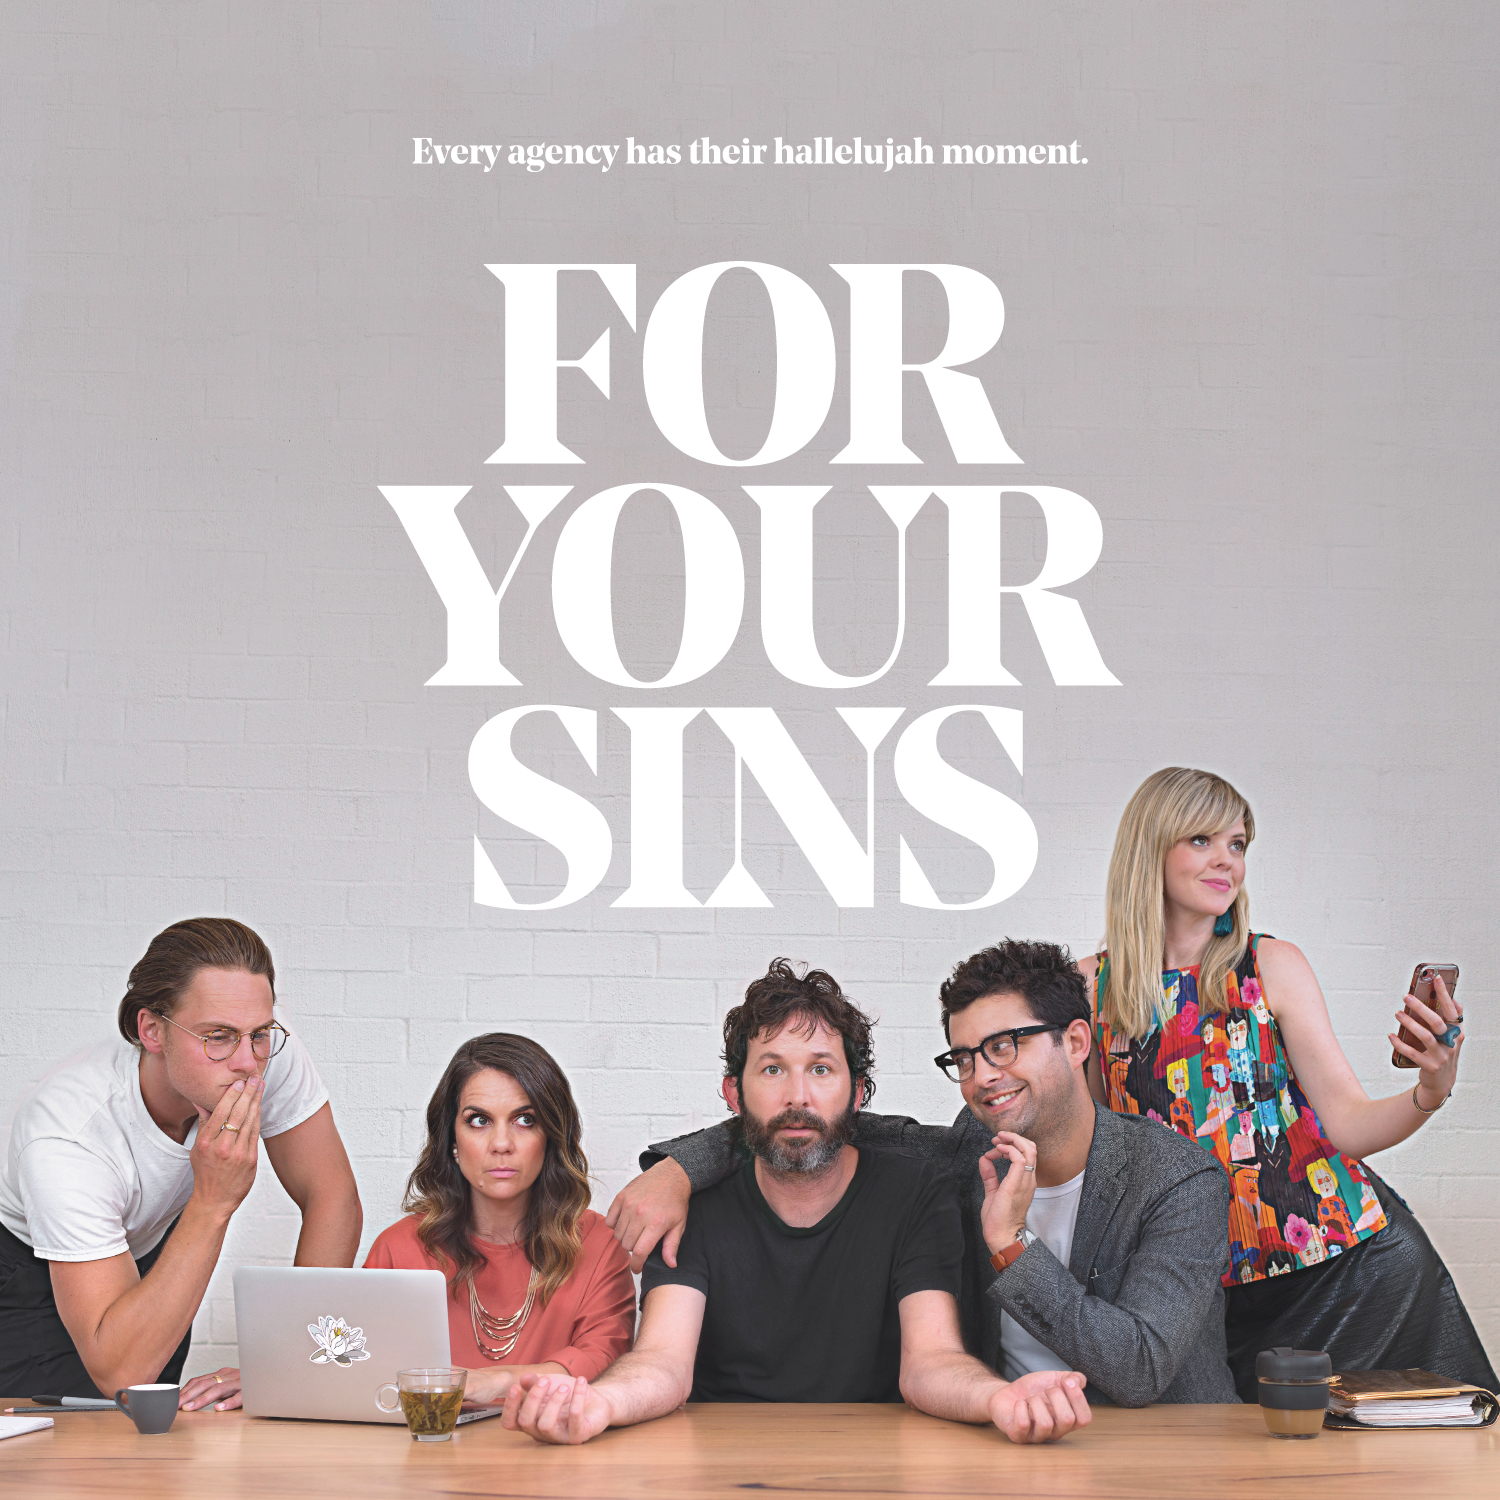 Satirical short film 'For Your Sins' explores what Jesus might have done this Easter Friday